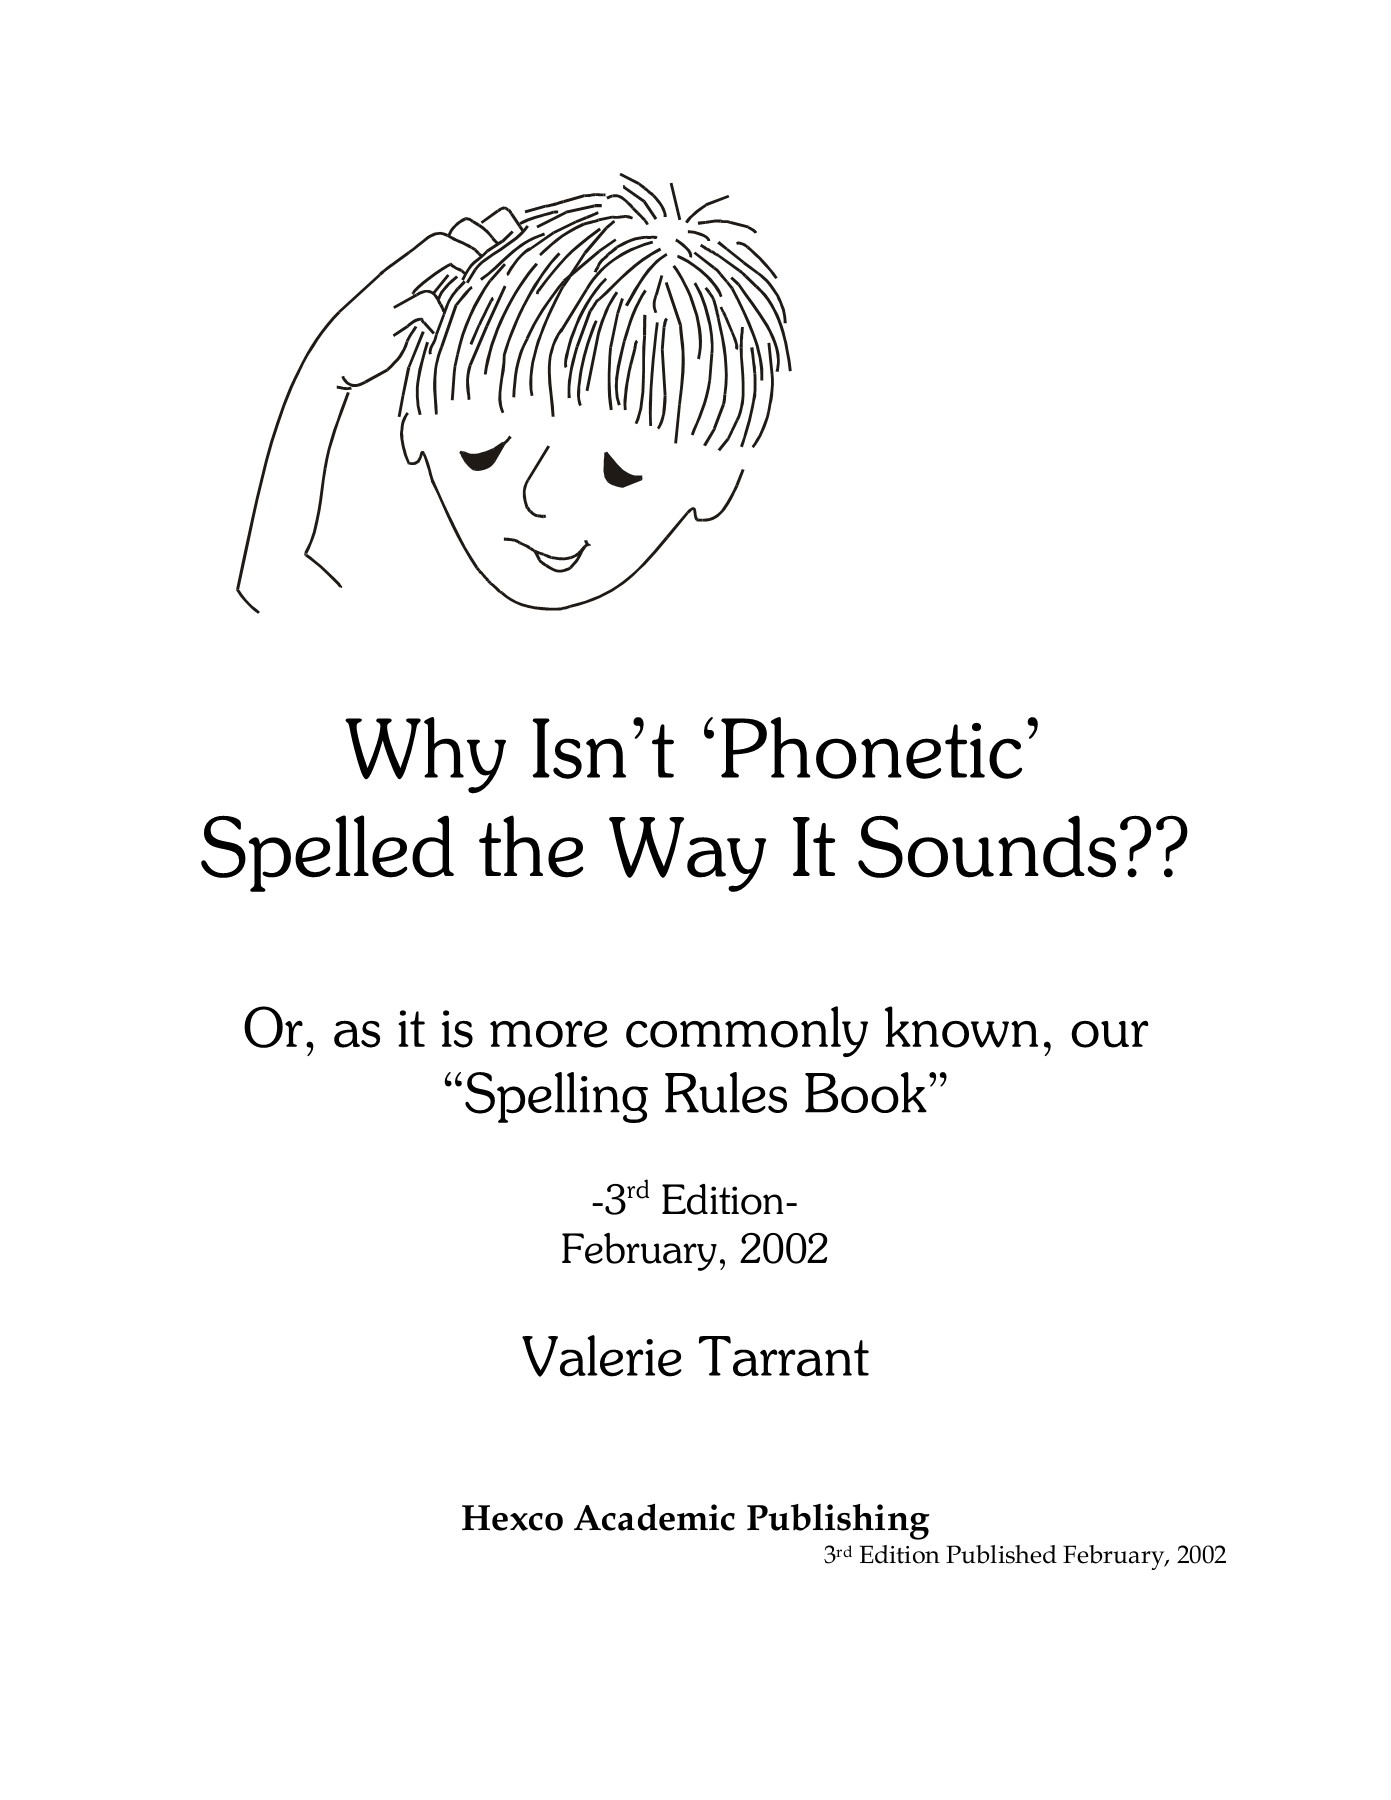 Why Isn't 'Phonetic' Spelled the Way It Sounds?? Pages 1